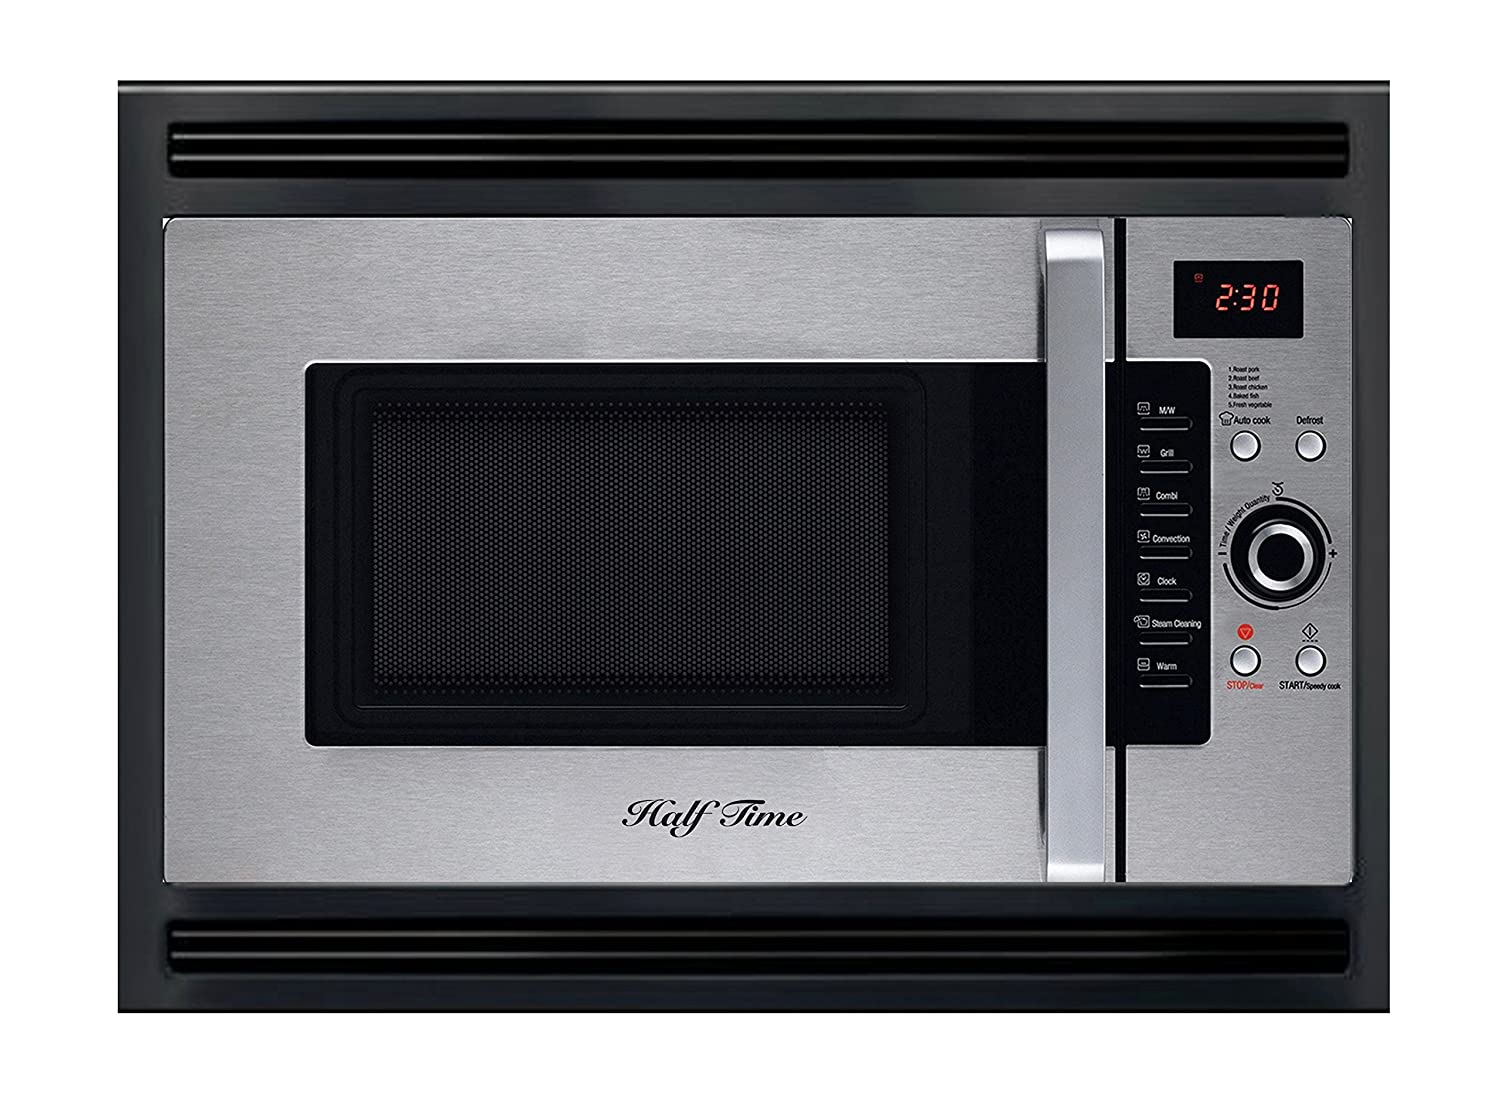 "24"" Half Time Built In Convection Microwave Oven for Home & RV. 3 Year Manufacturers Warranty Included."